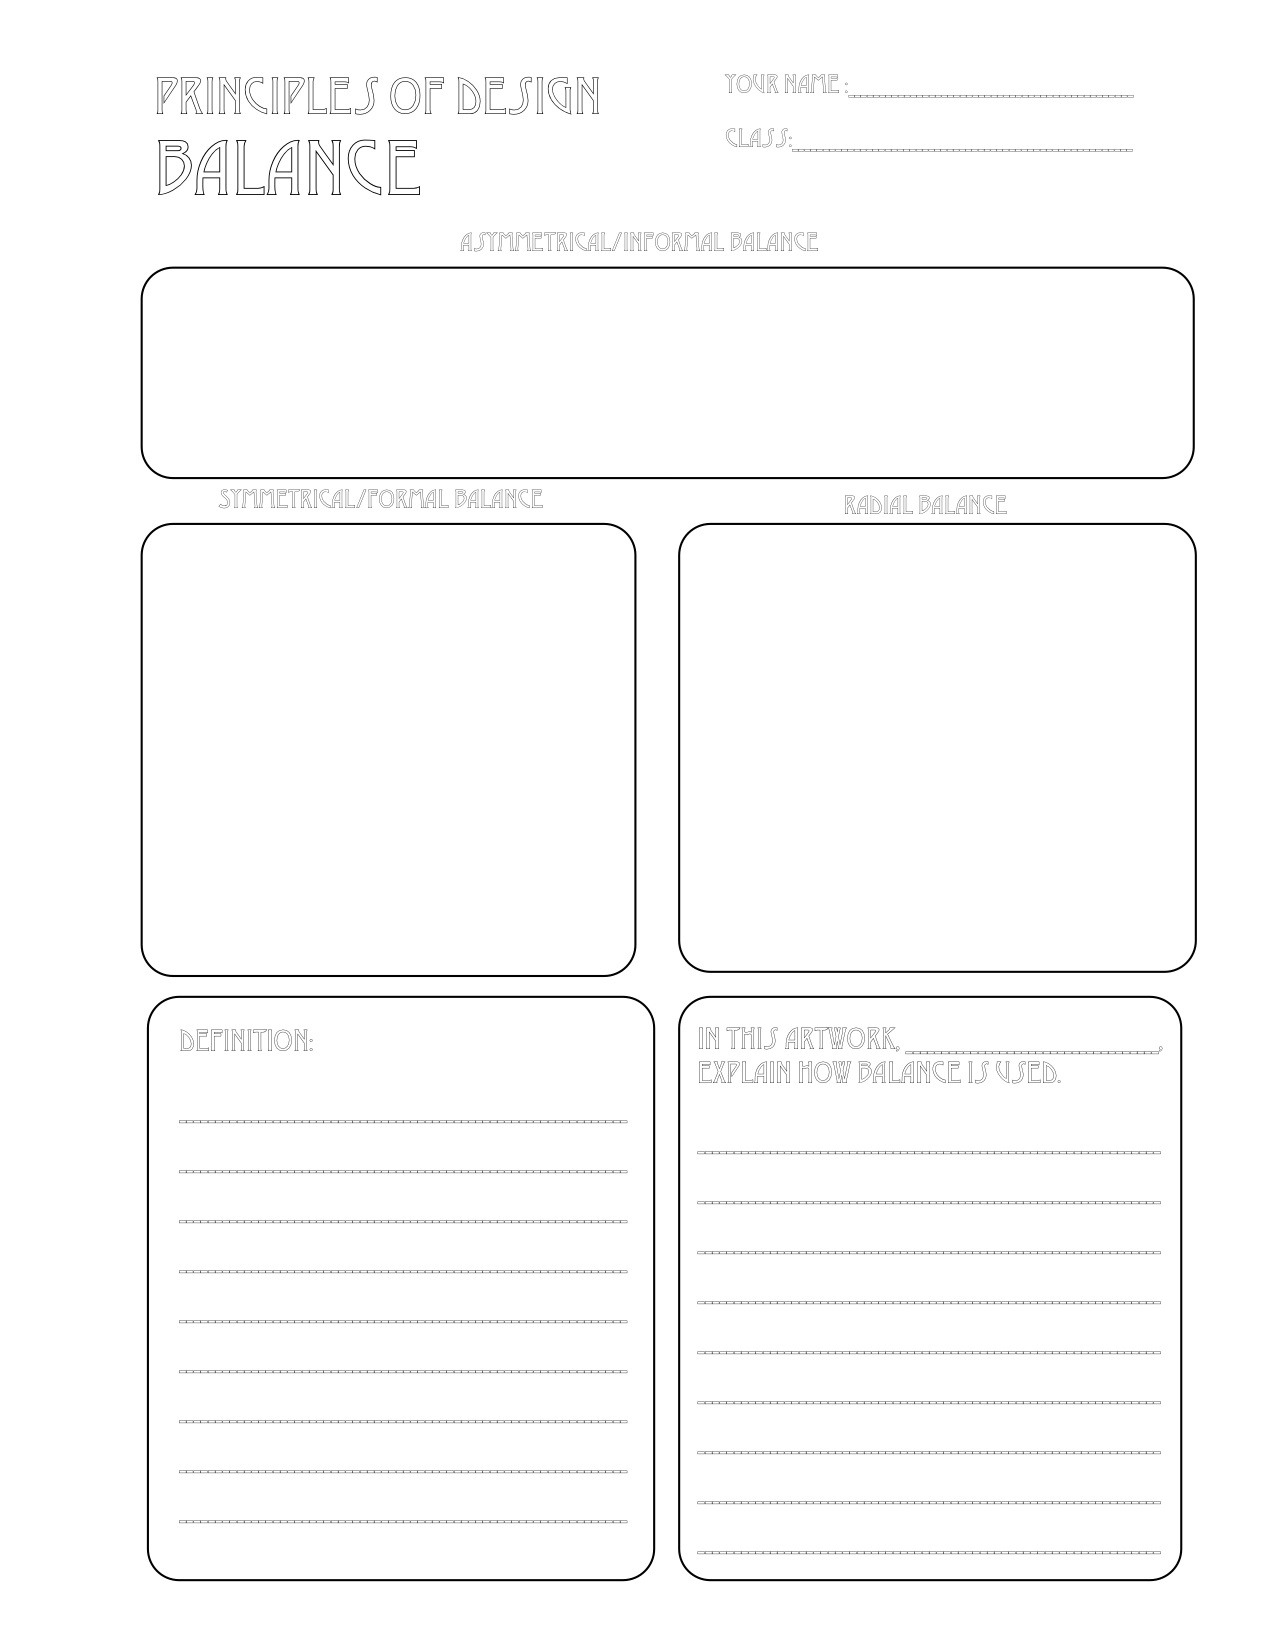 Printables Principles Of Design Worksheet the smartteacher resource balance handout worksheet for principles of design balance